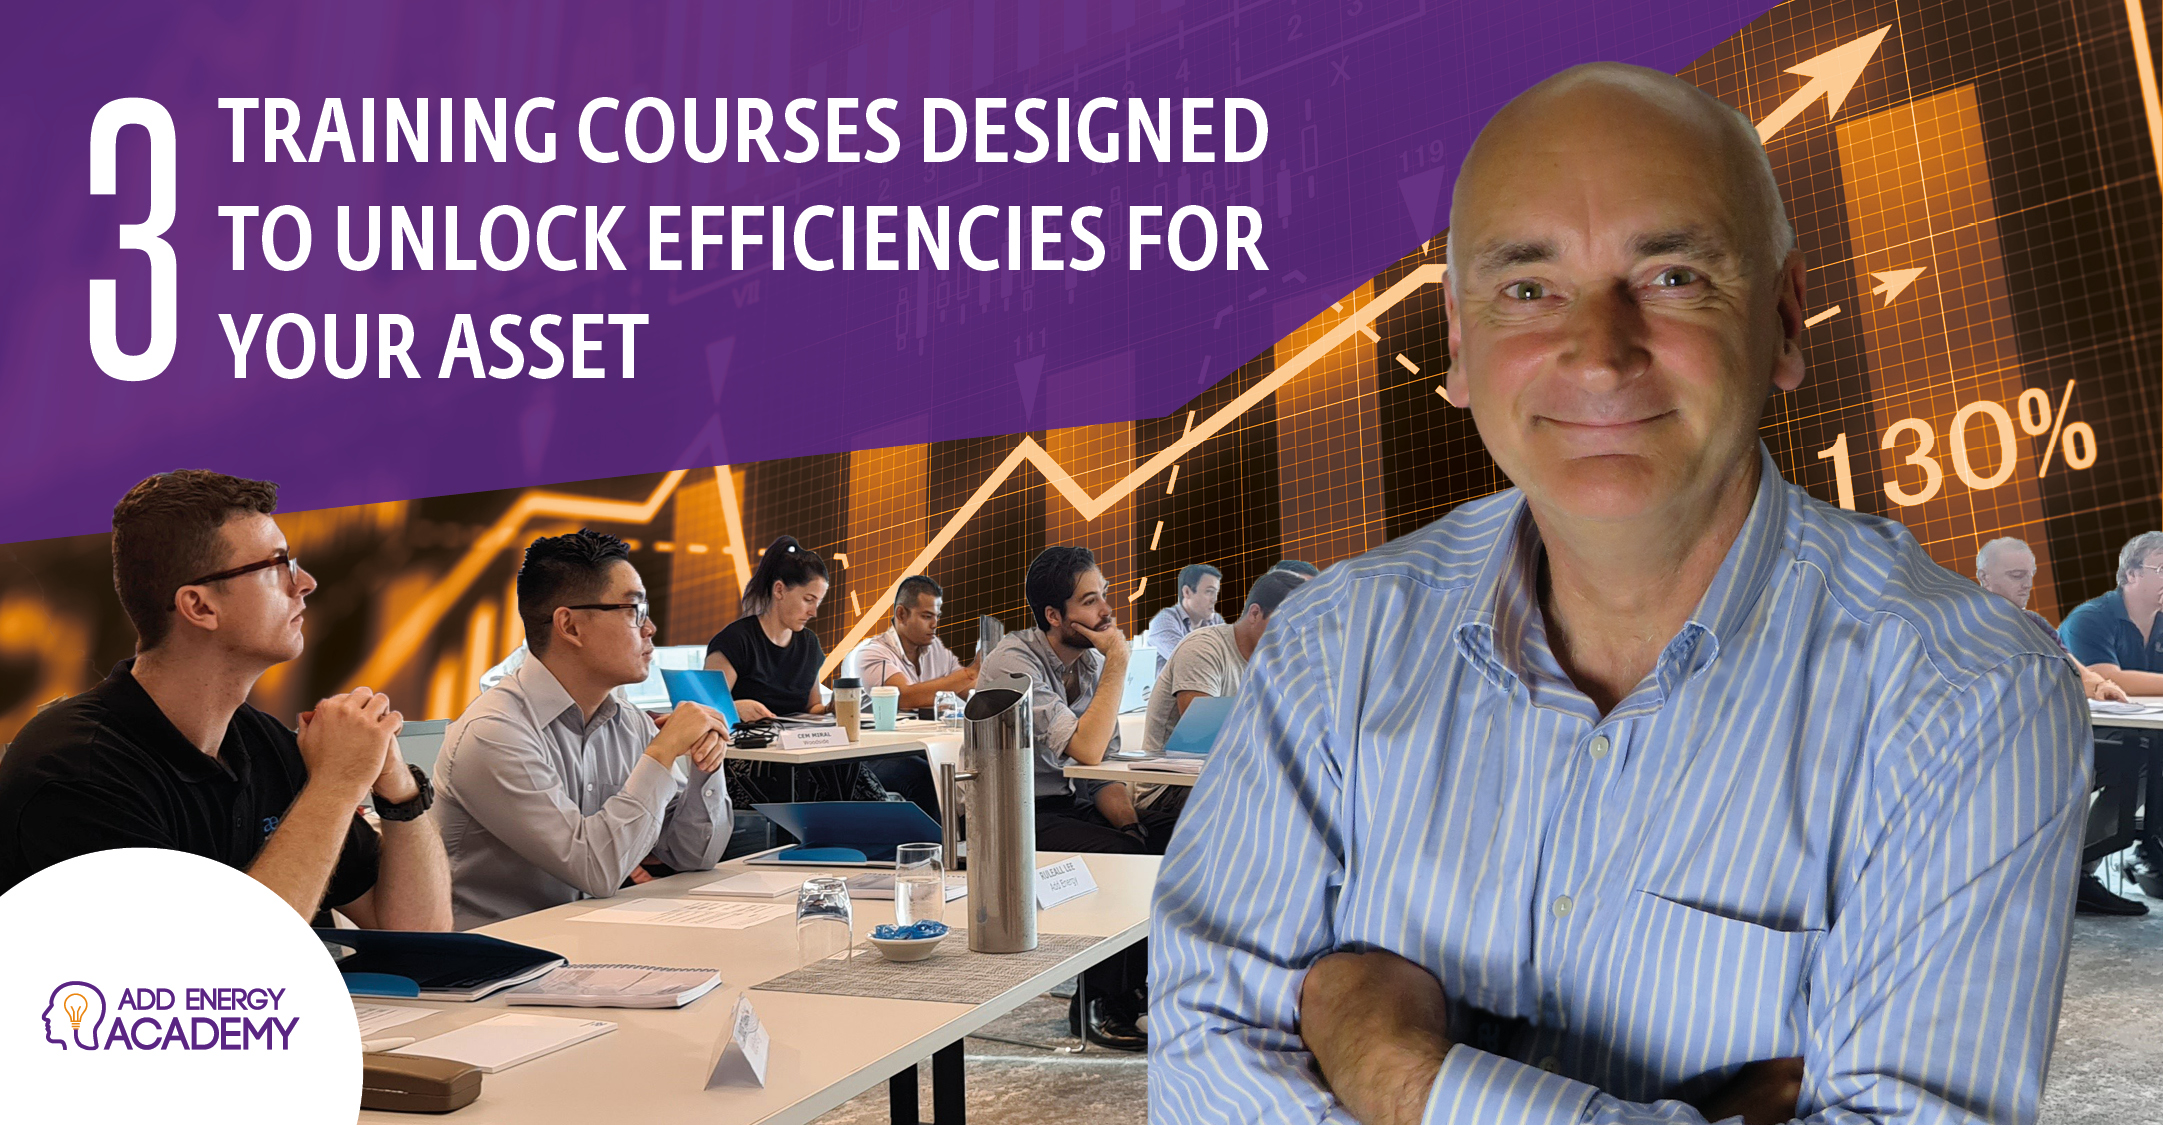 3 training courses designed to unlock efficiencies for your asset